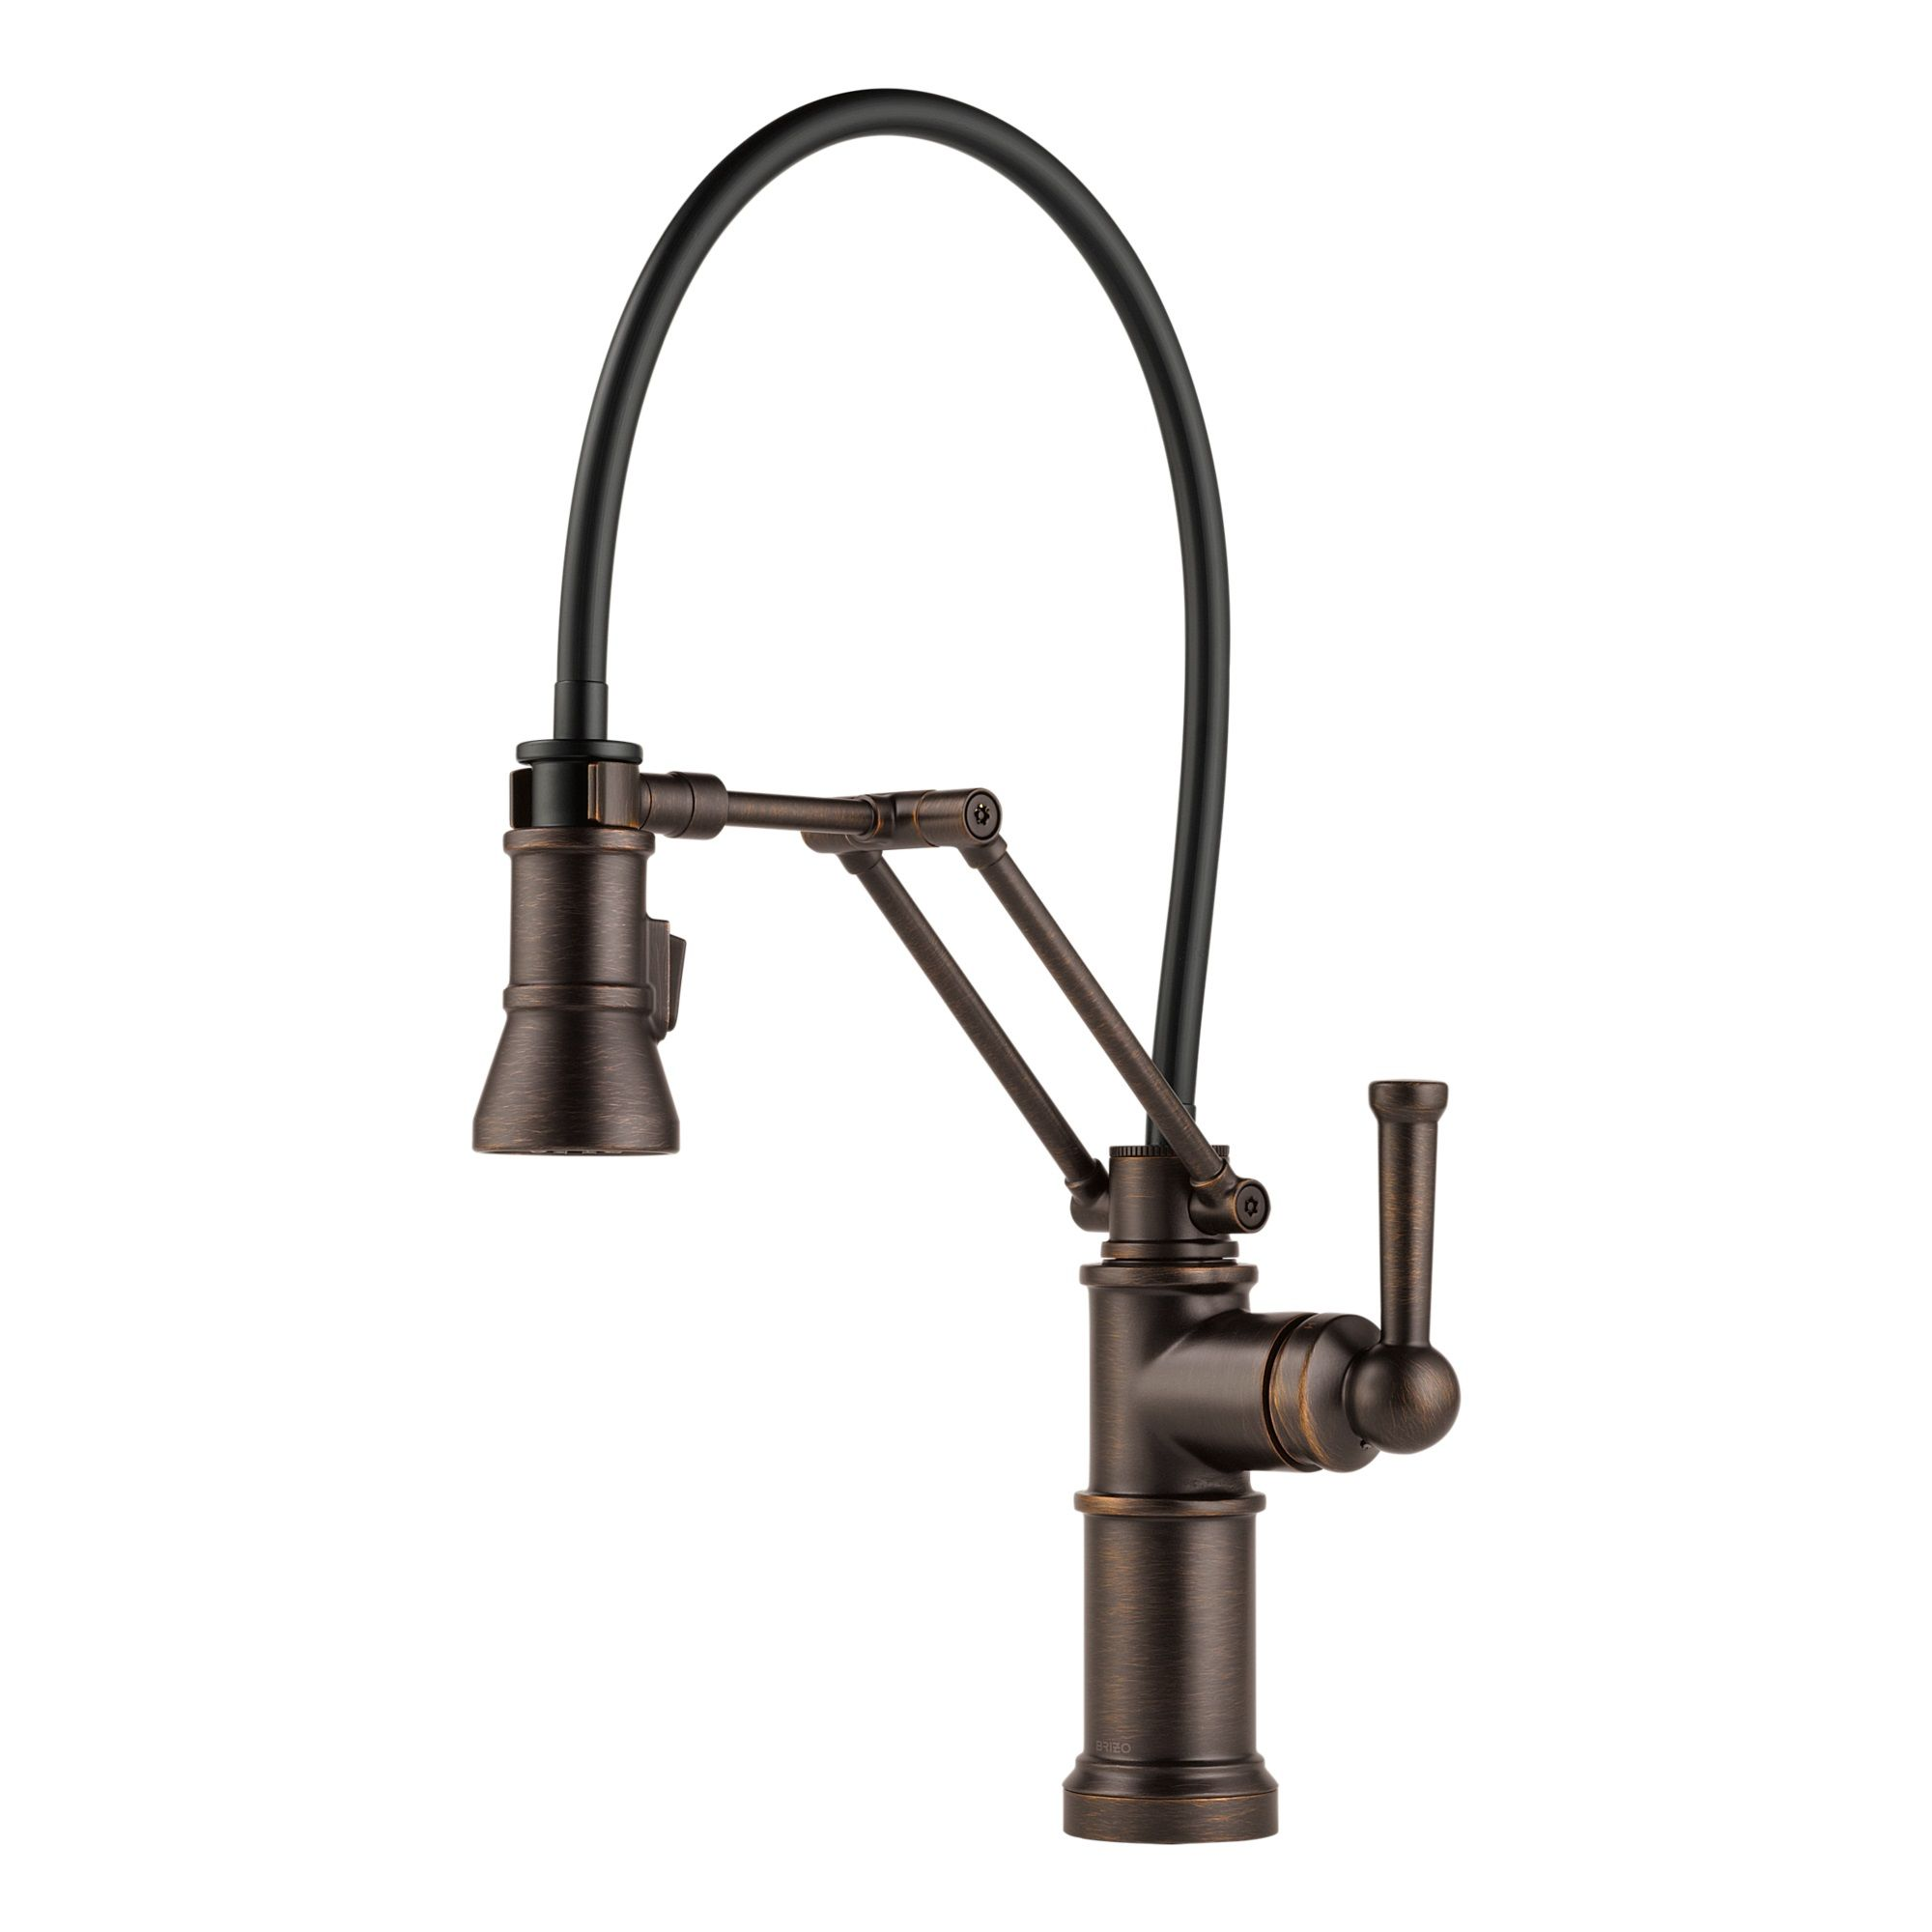 Brizo 63225lf rb venetian bronze artesso pull down kitchen faucet with dual jointed articulating arm and magnetic docking spray head includes lifetime